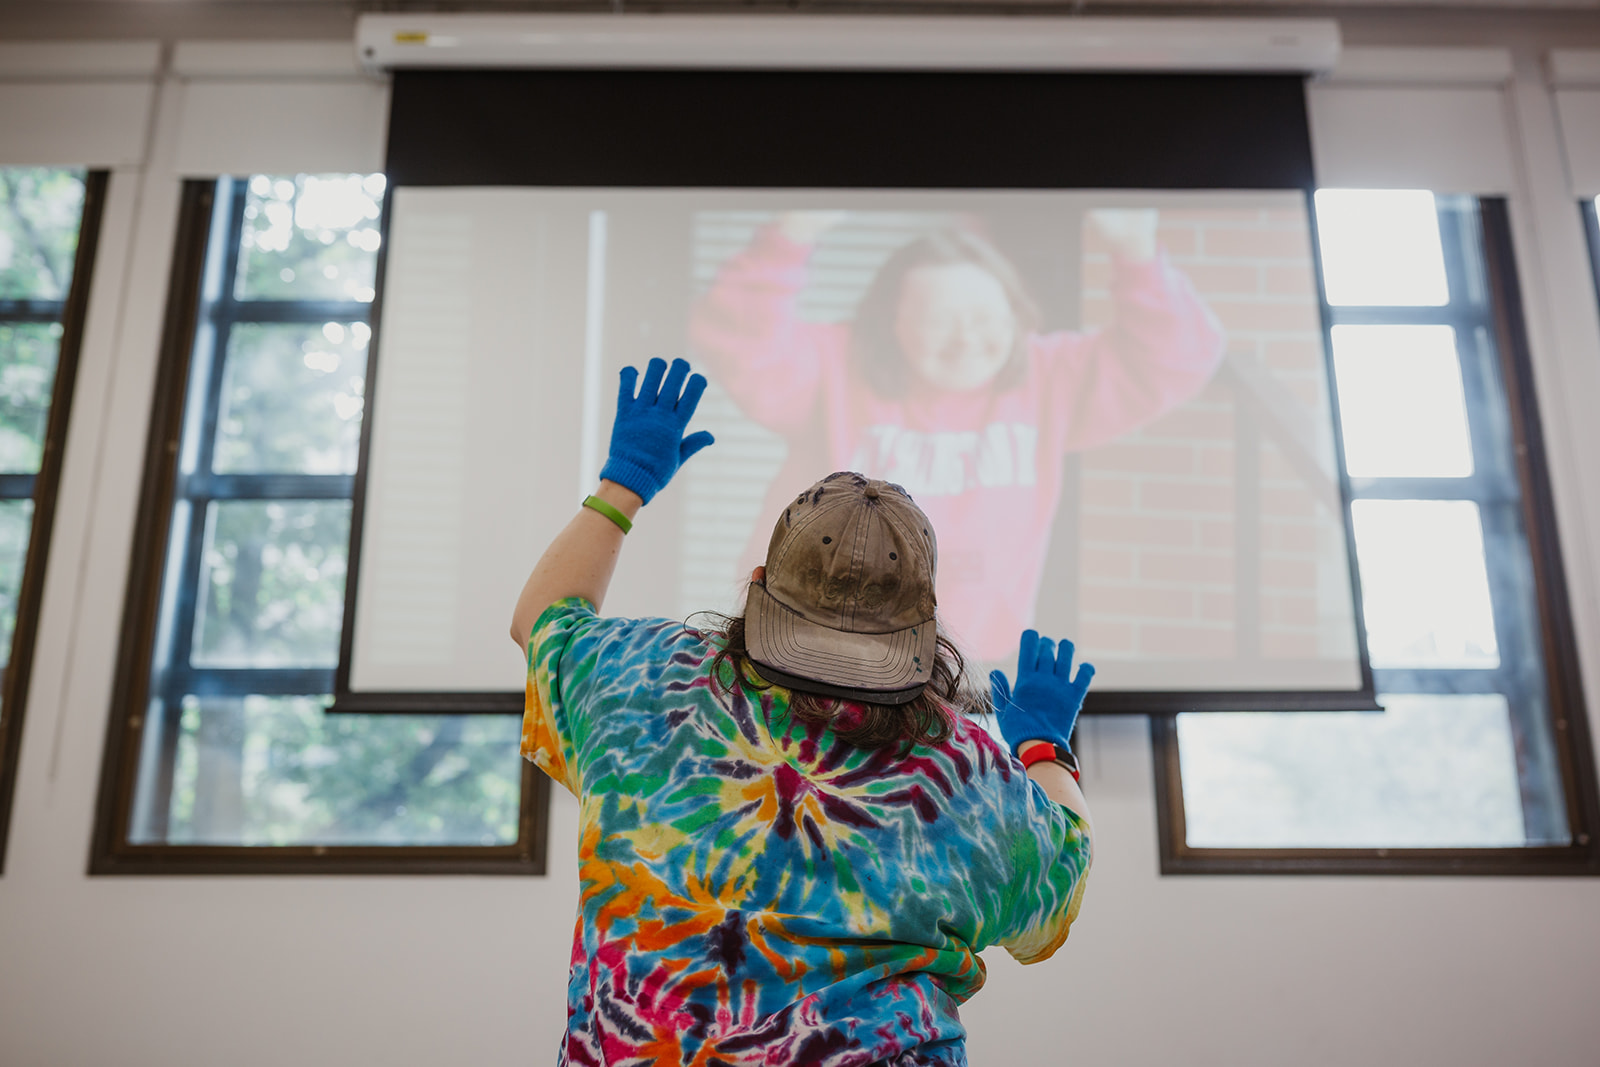 On July 22, 2019, Teresa raises her hands and dances, mimicking the screen image of herself in a Change.org video from 2014. Photo by Isabella Sarmiento, This Is It Studios.